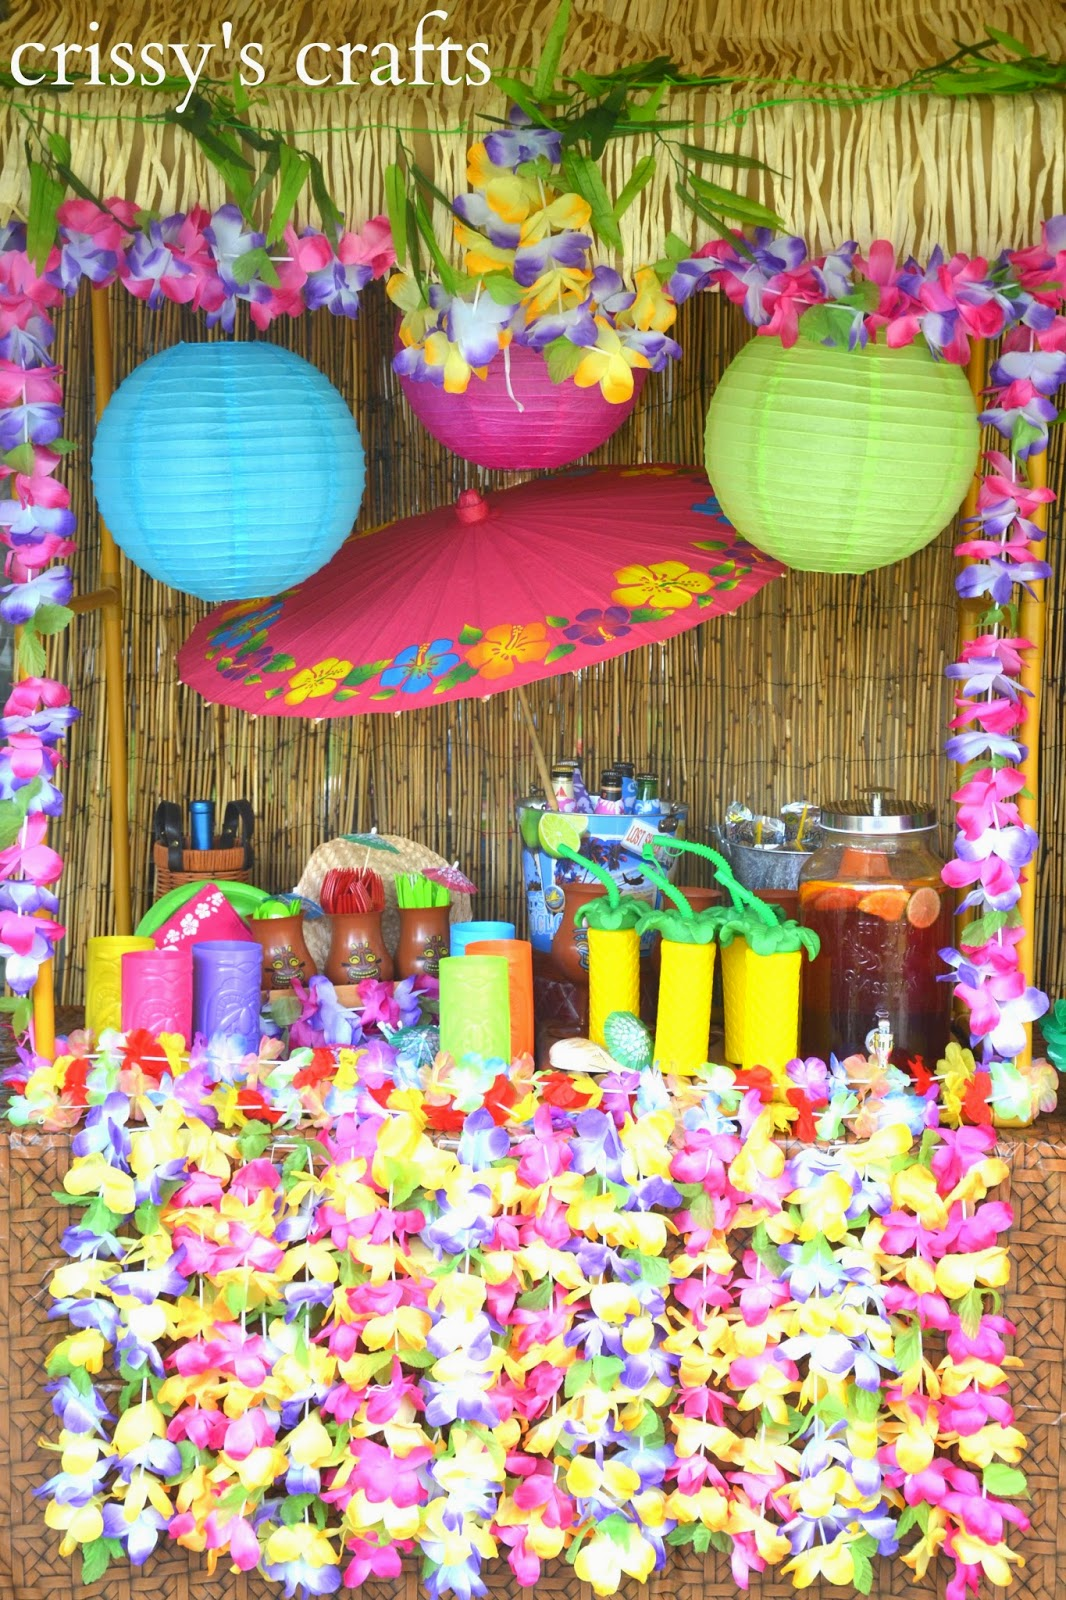 We Set Up A Tiki Bar By Using Our Tabletop Luau Hut And Decorating It With  Paper Lanterns, Hibiscus Print Parasols And Hawaiian Leis.